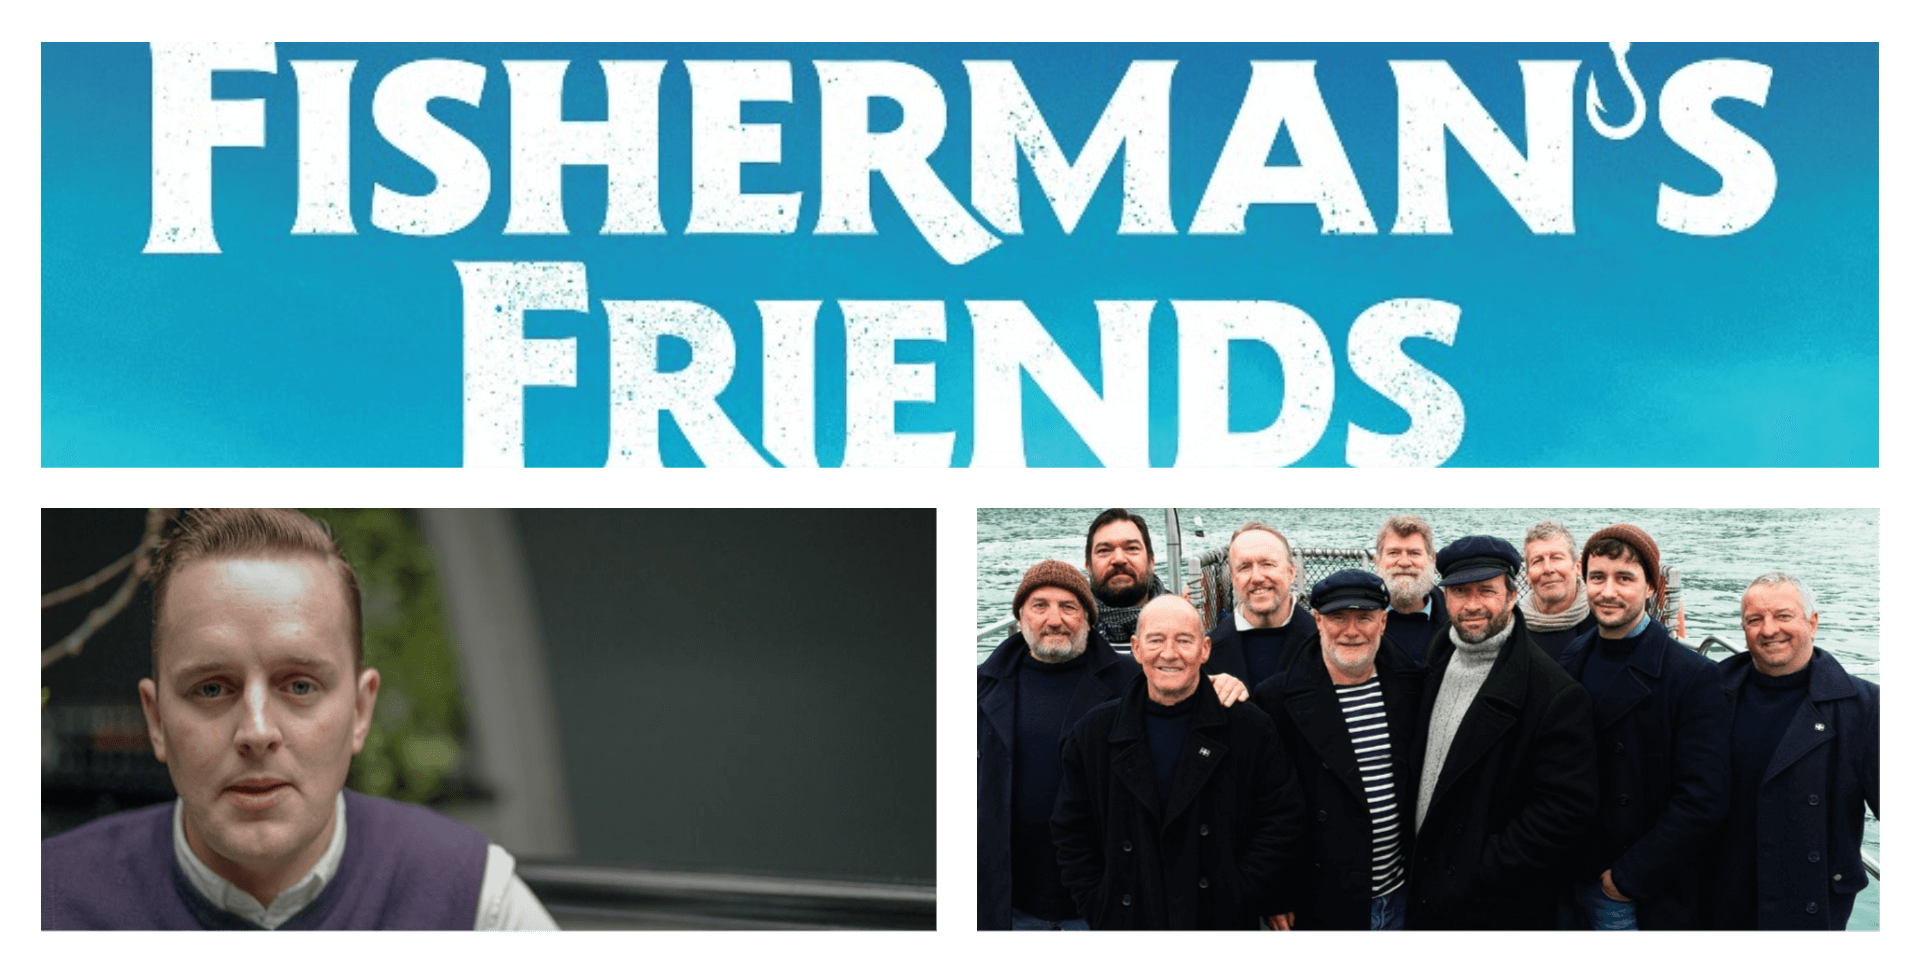 Interview with Fisherman's Friends (2019)